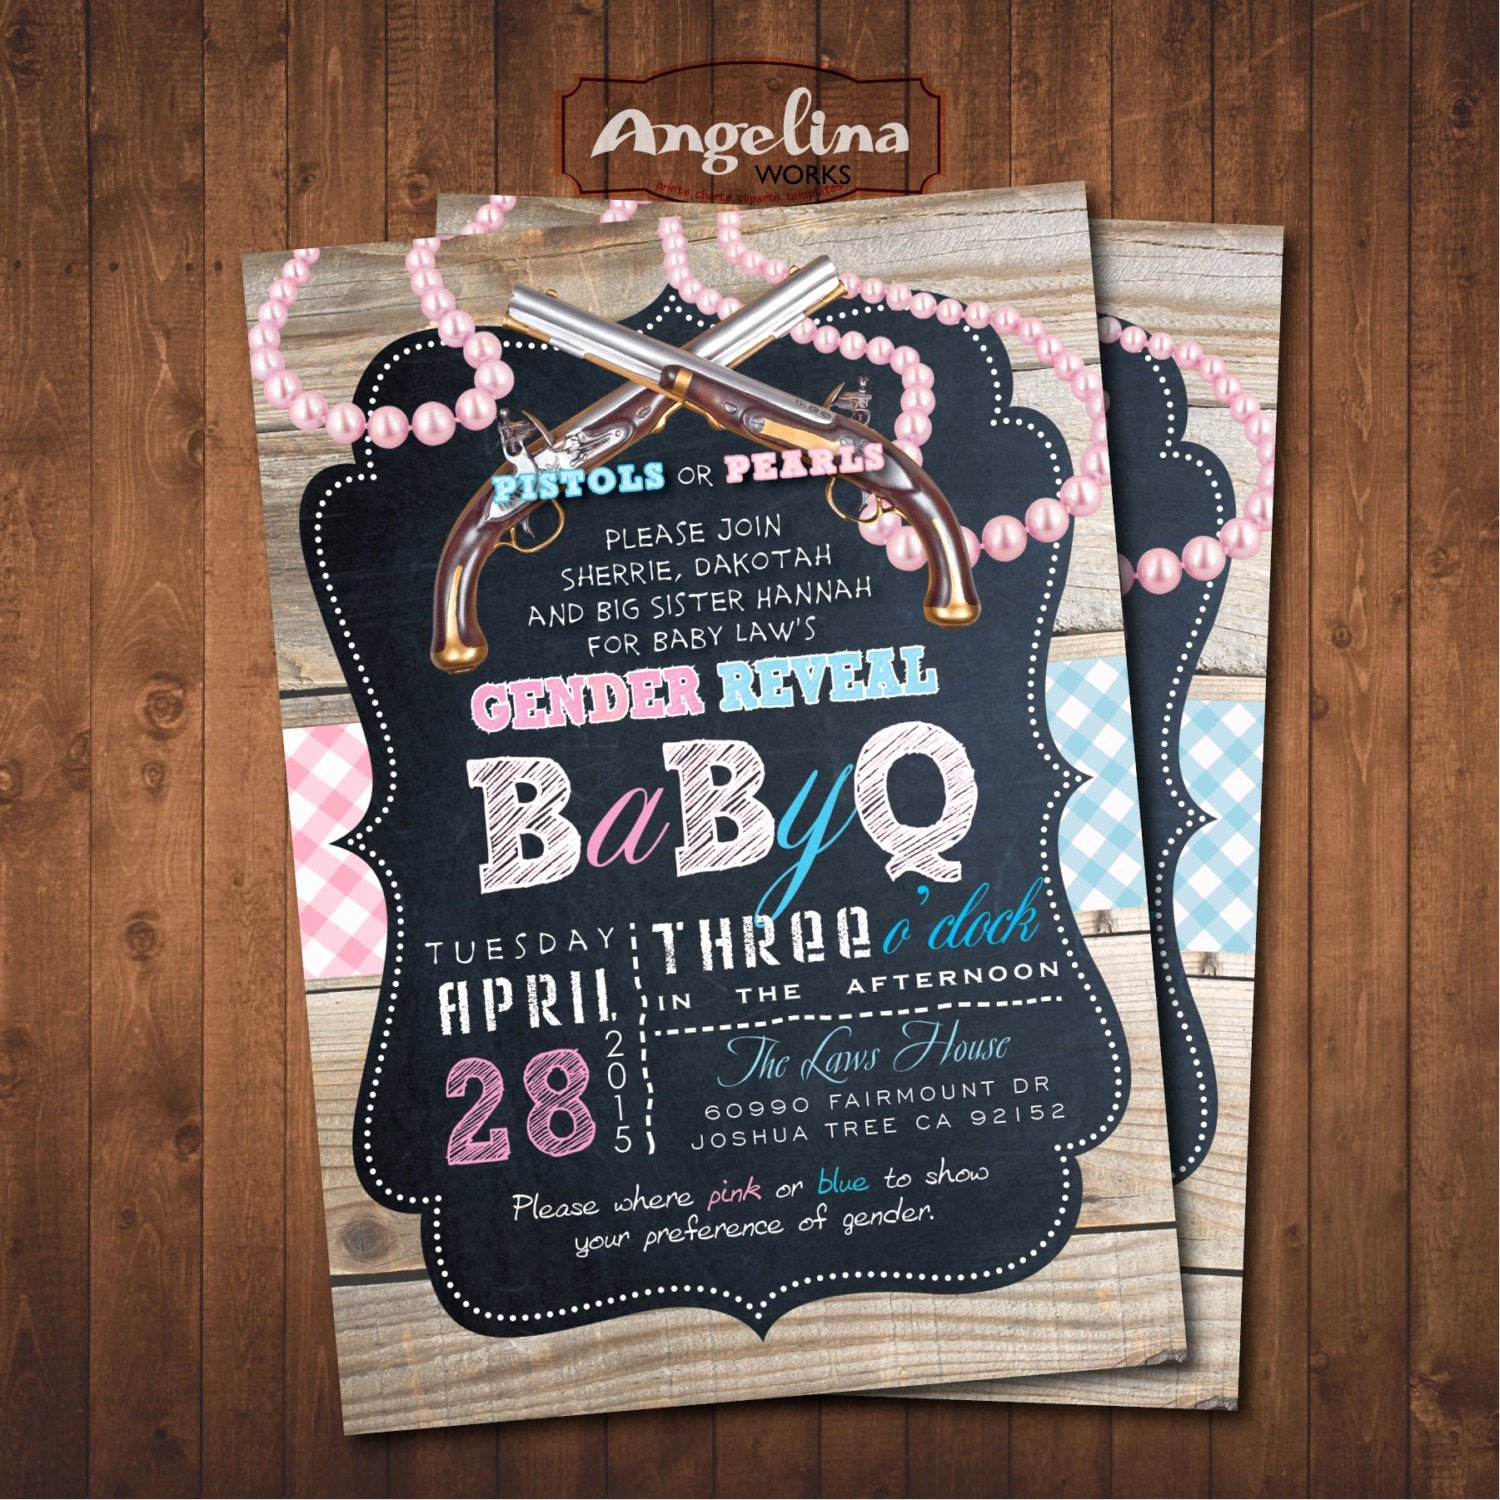 Gender Reveal Bbq Invitations Beautiful Pistols or Pearls Gender Reveal Baby Q Shower Invitation